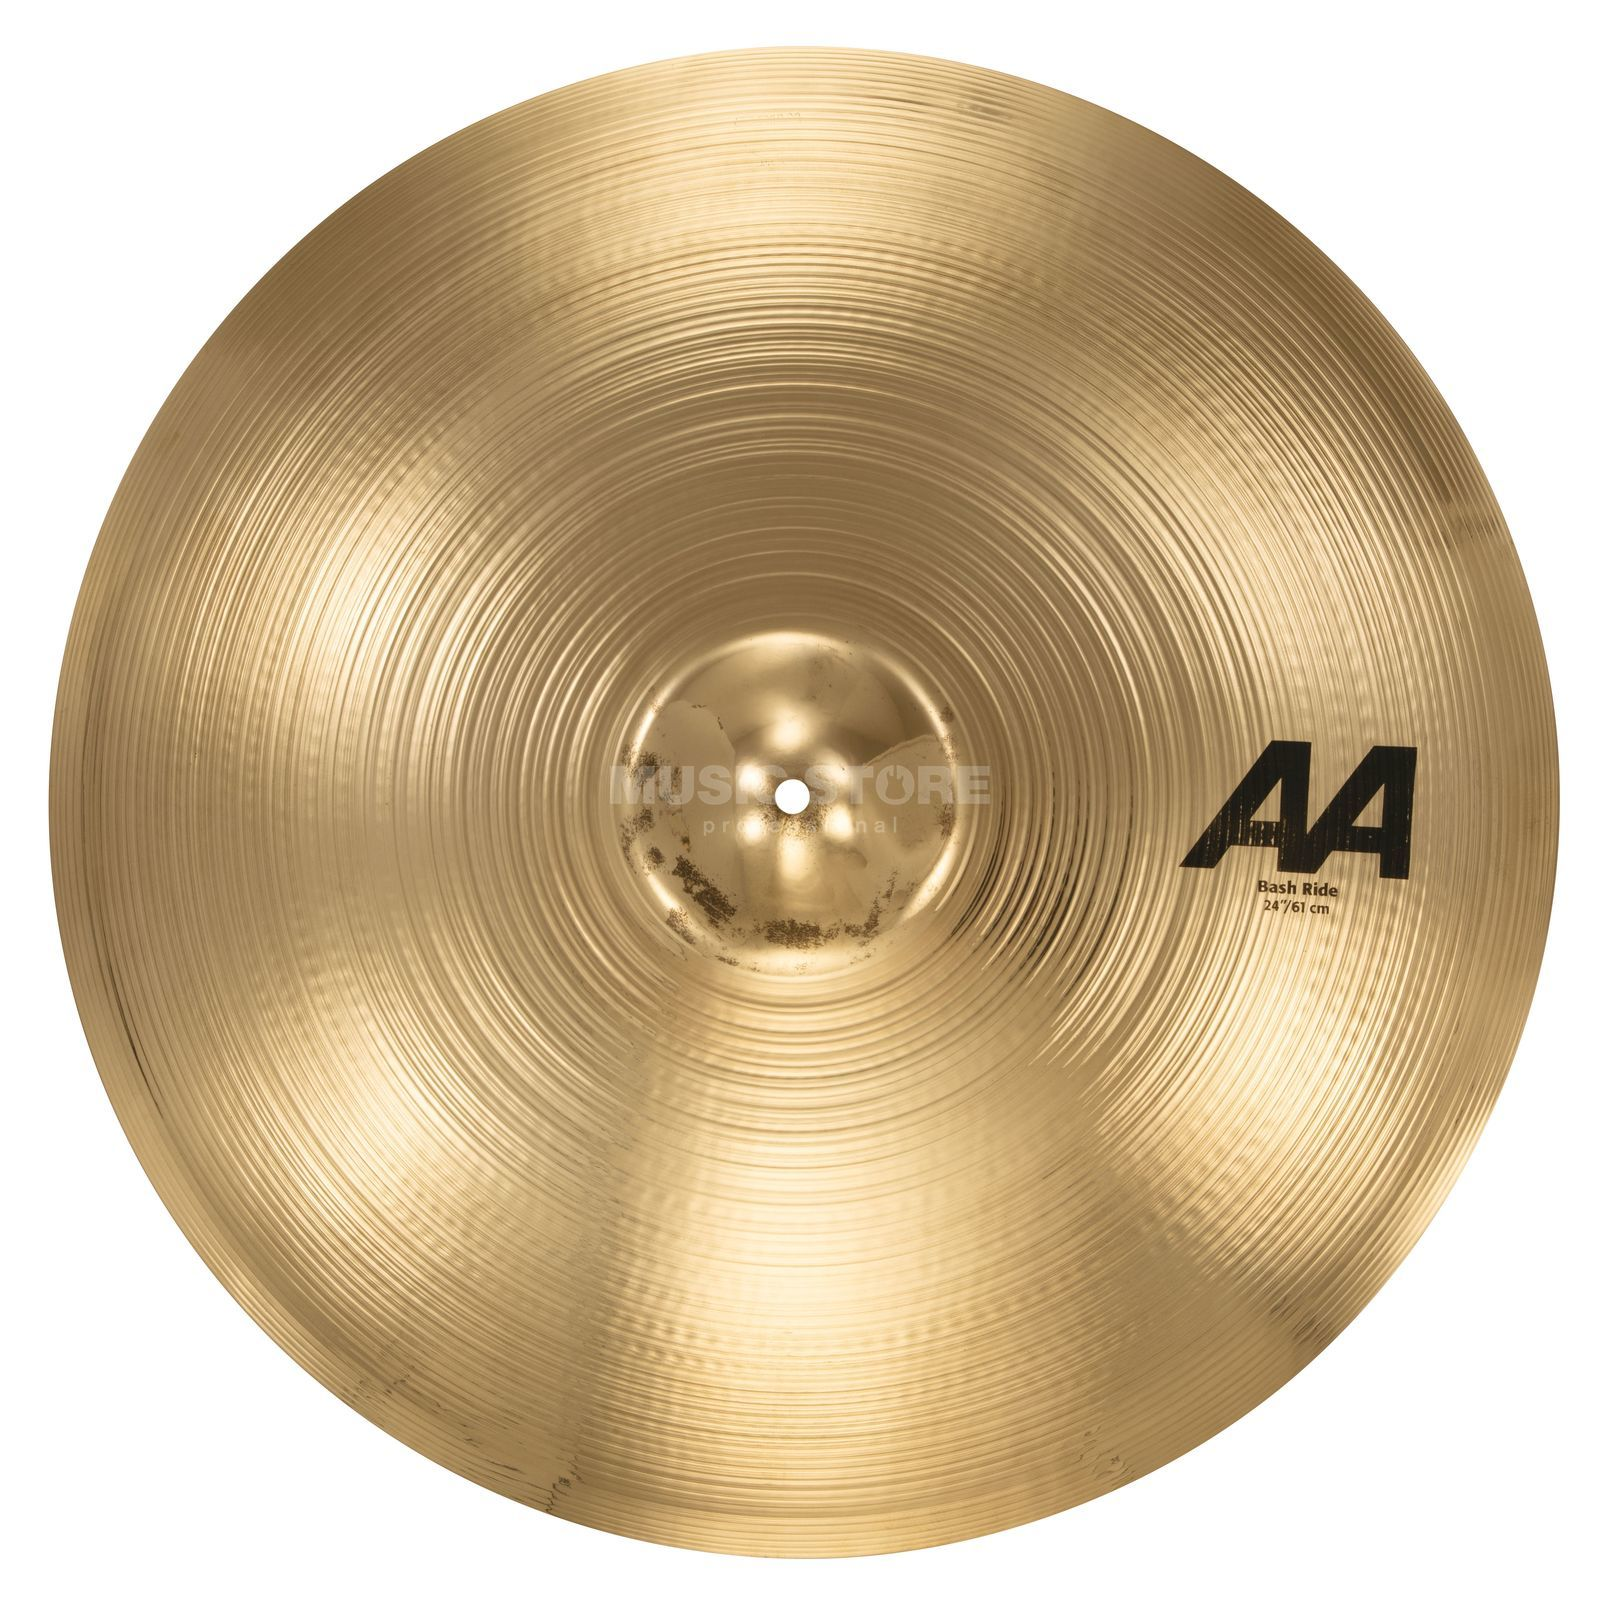 "Sabian AA Bash Ride 24"", Brilliant Finish Produktbild"